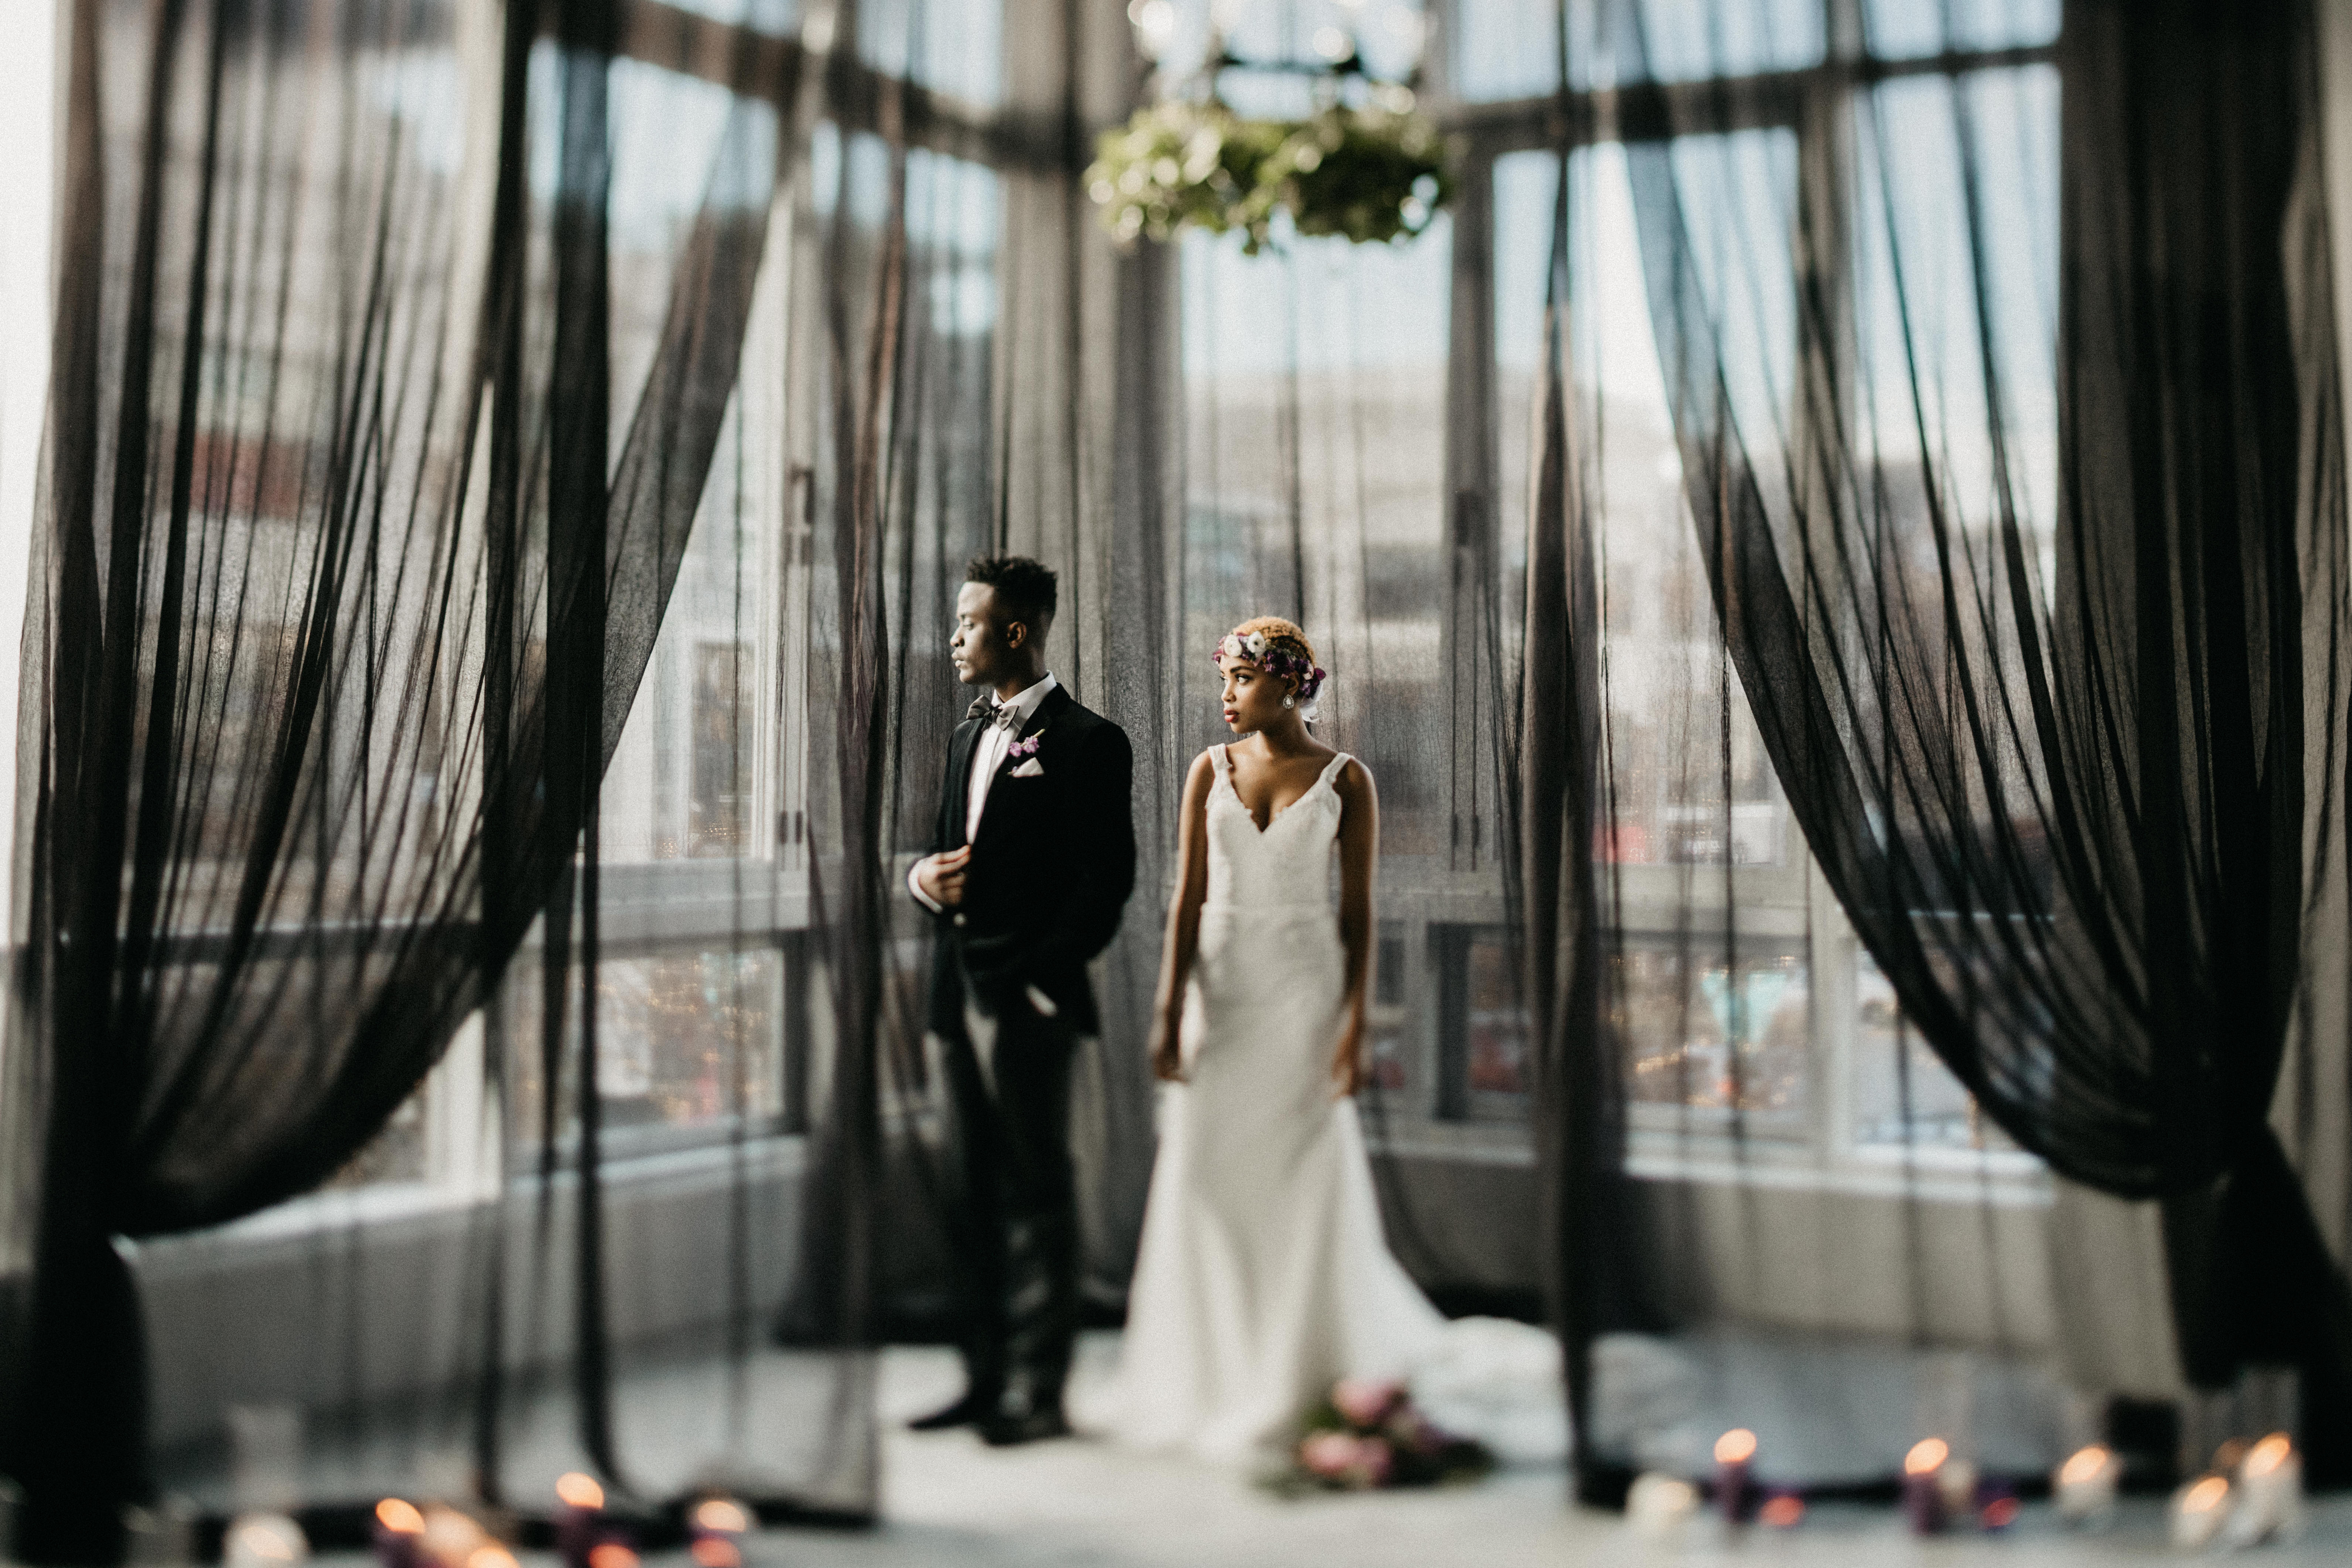 Wedding Trends: What to Expect in 2019